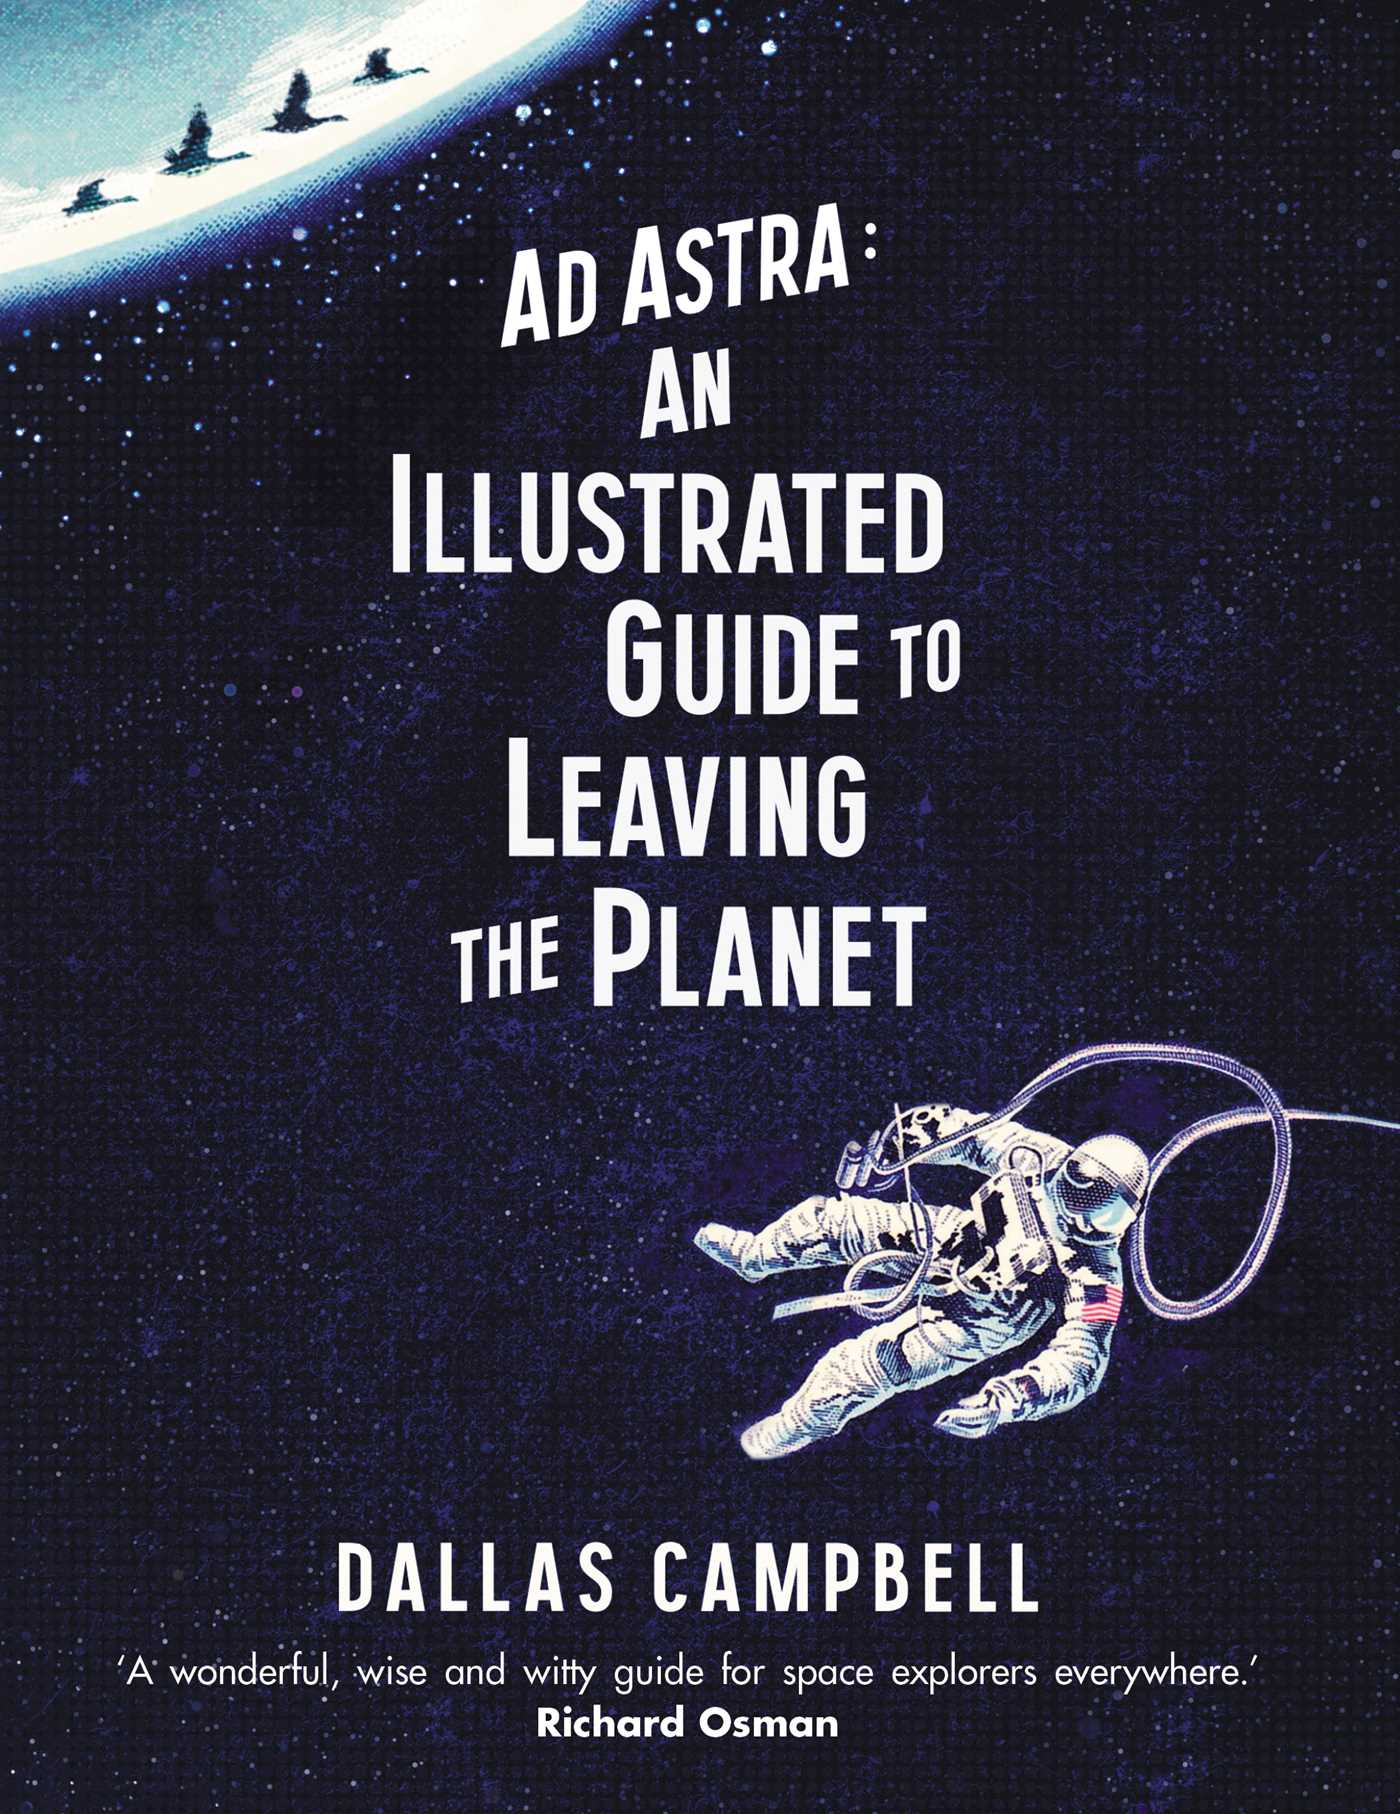 Ad astra an illustrated guide to leaving the planet 9781471164057 hr